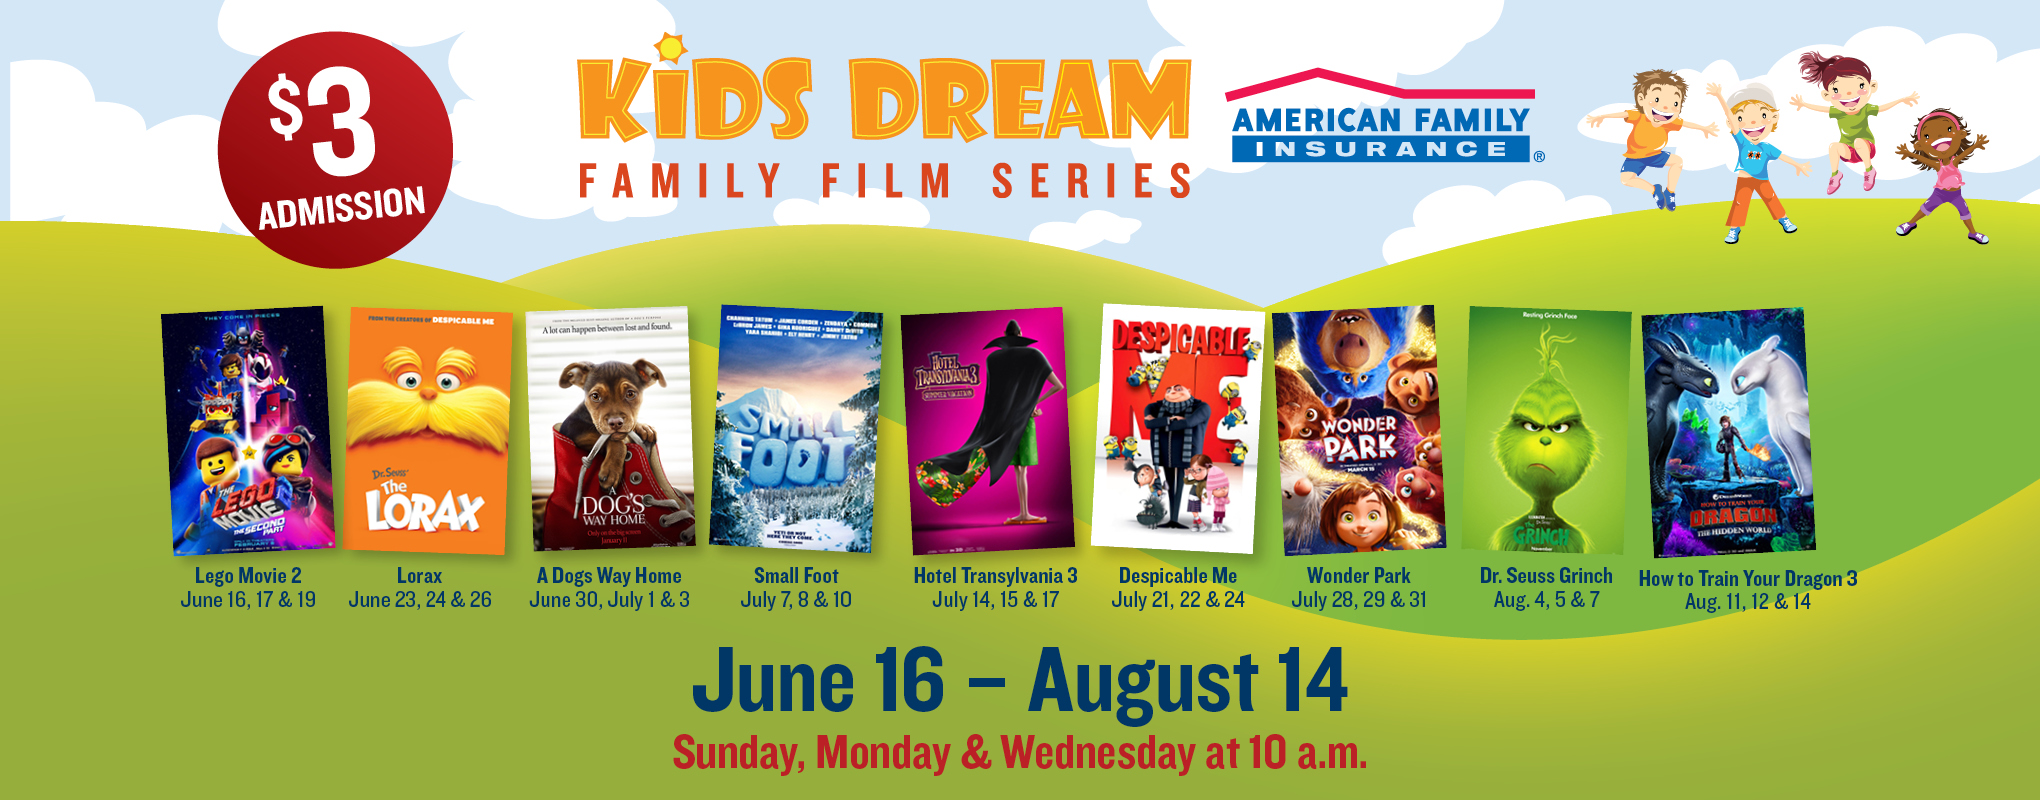 Kids Dream Summer Film Series